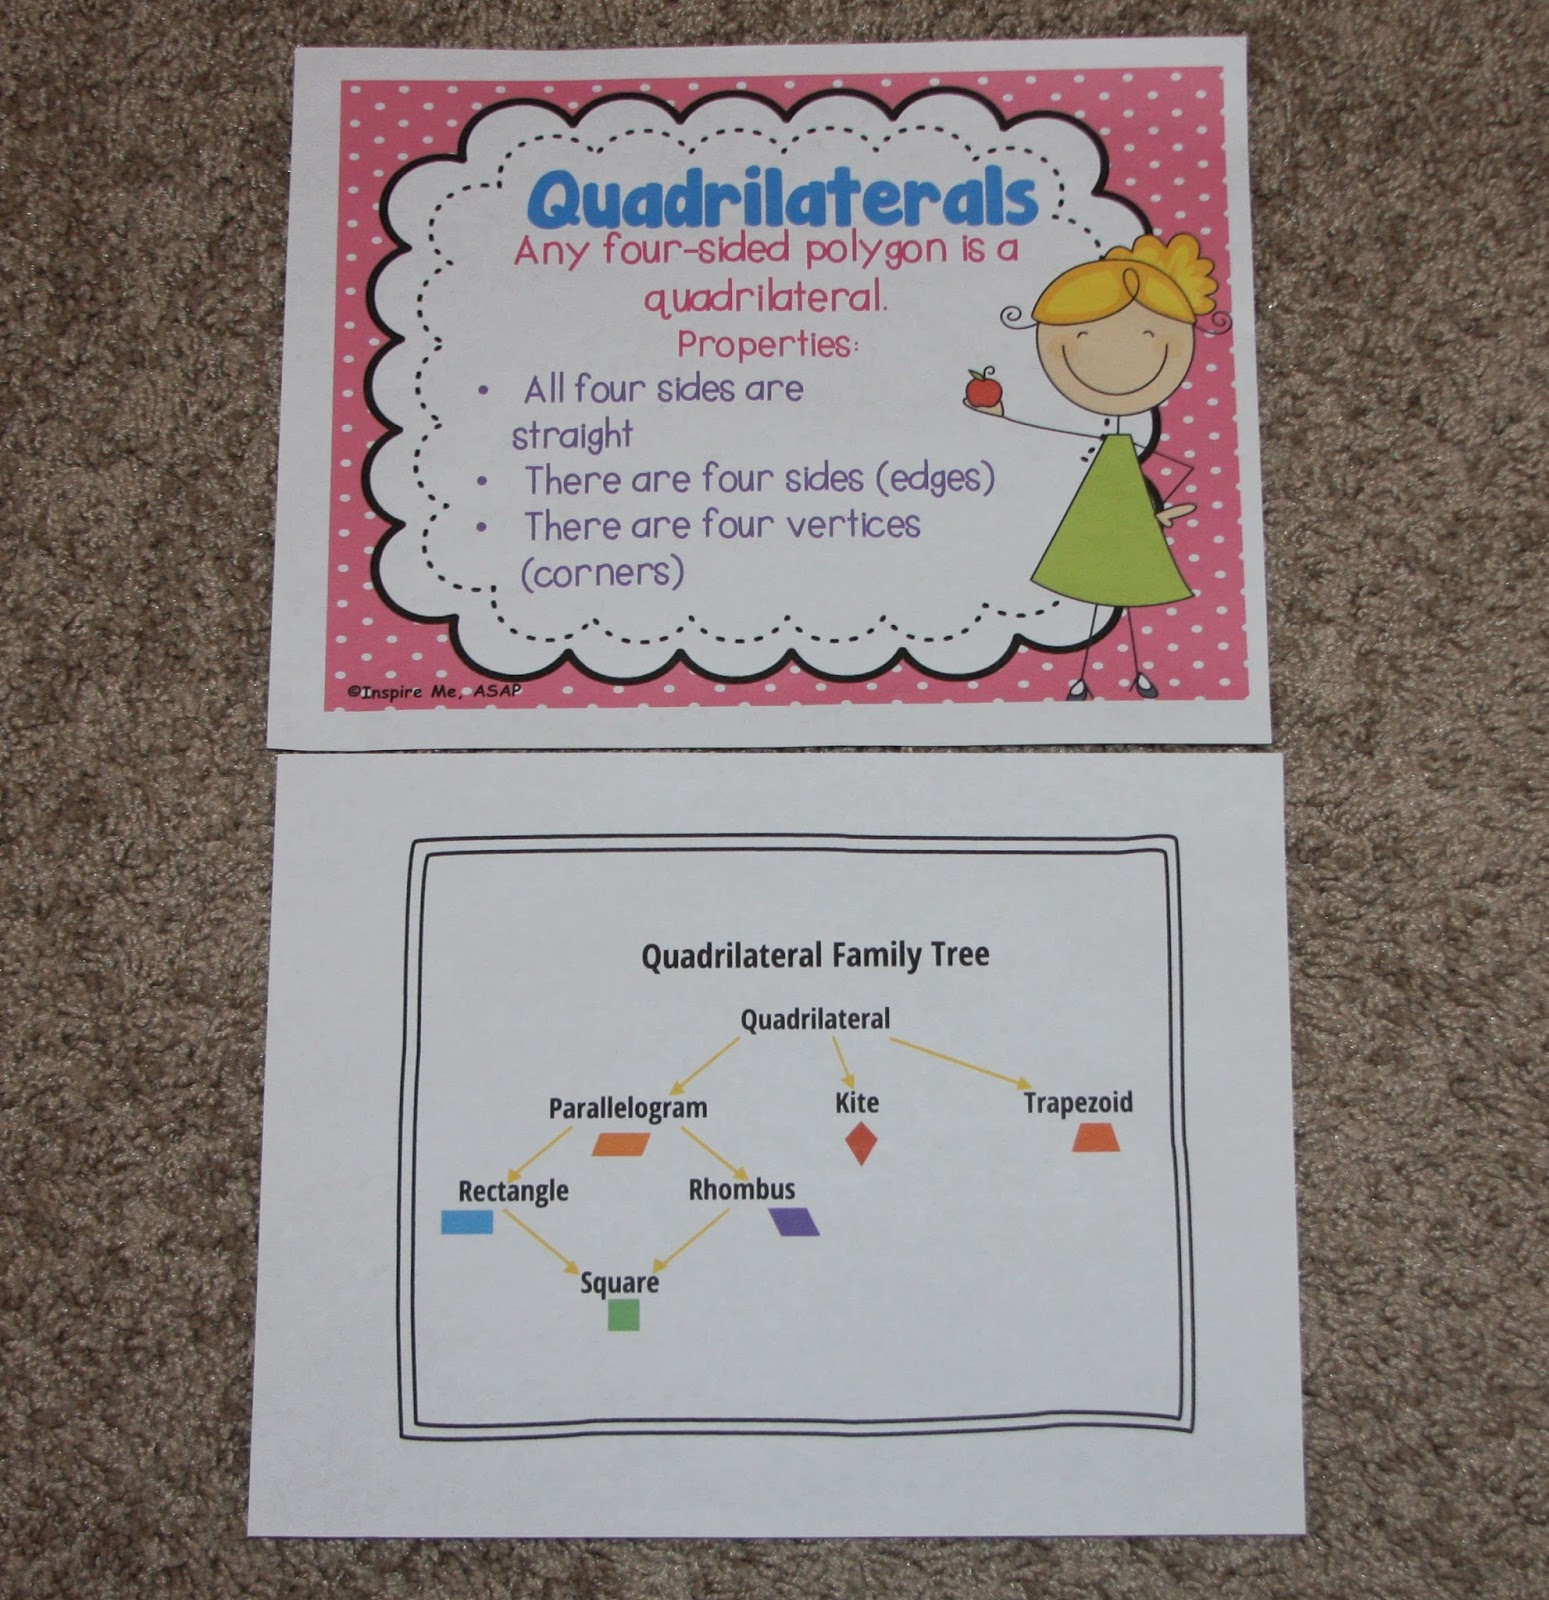 A Learning Journey Q Is For Quadrilaterals By karen daily on mar 10, 2014. a learning journey q is for quadrilaterals